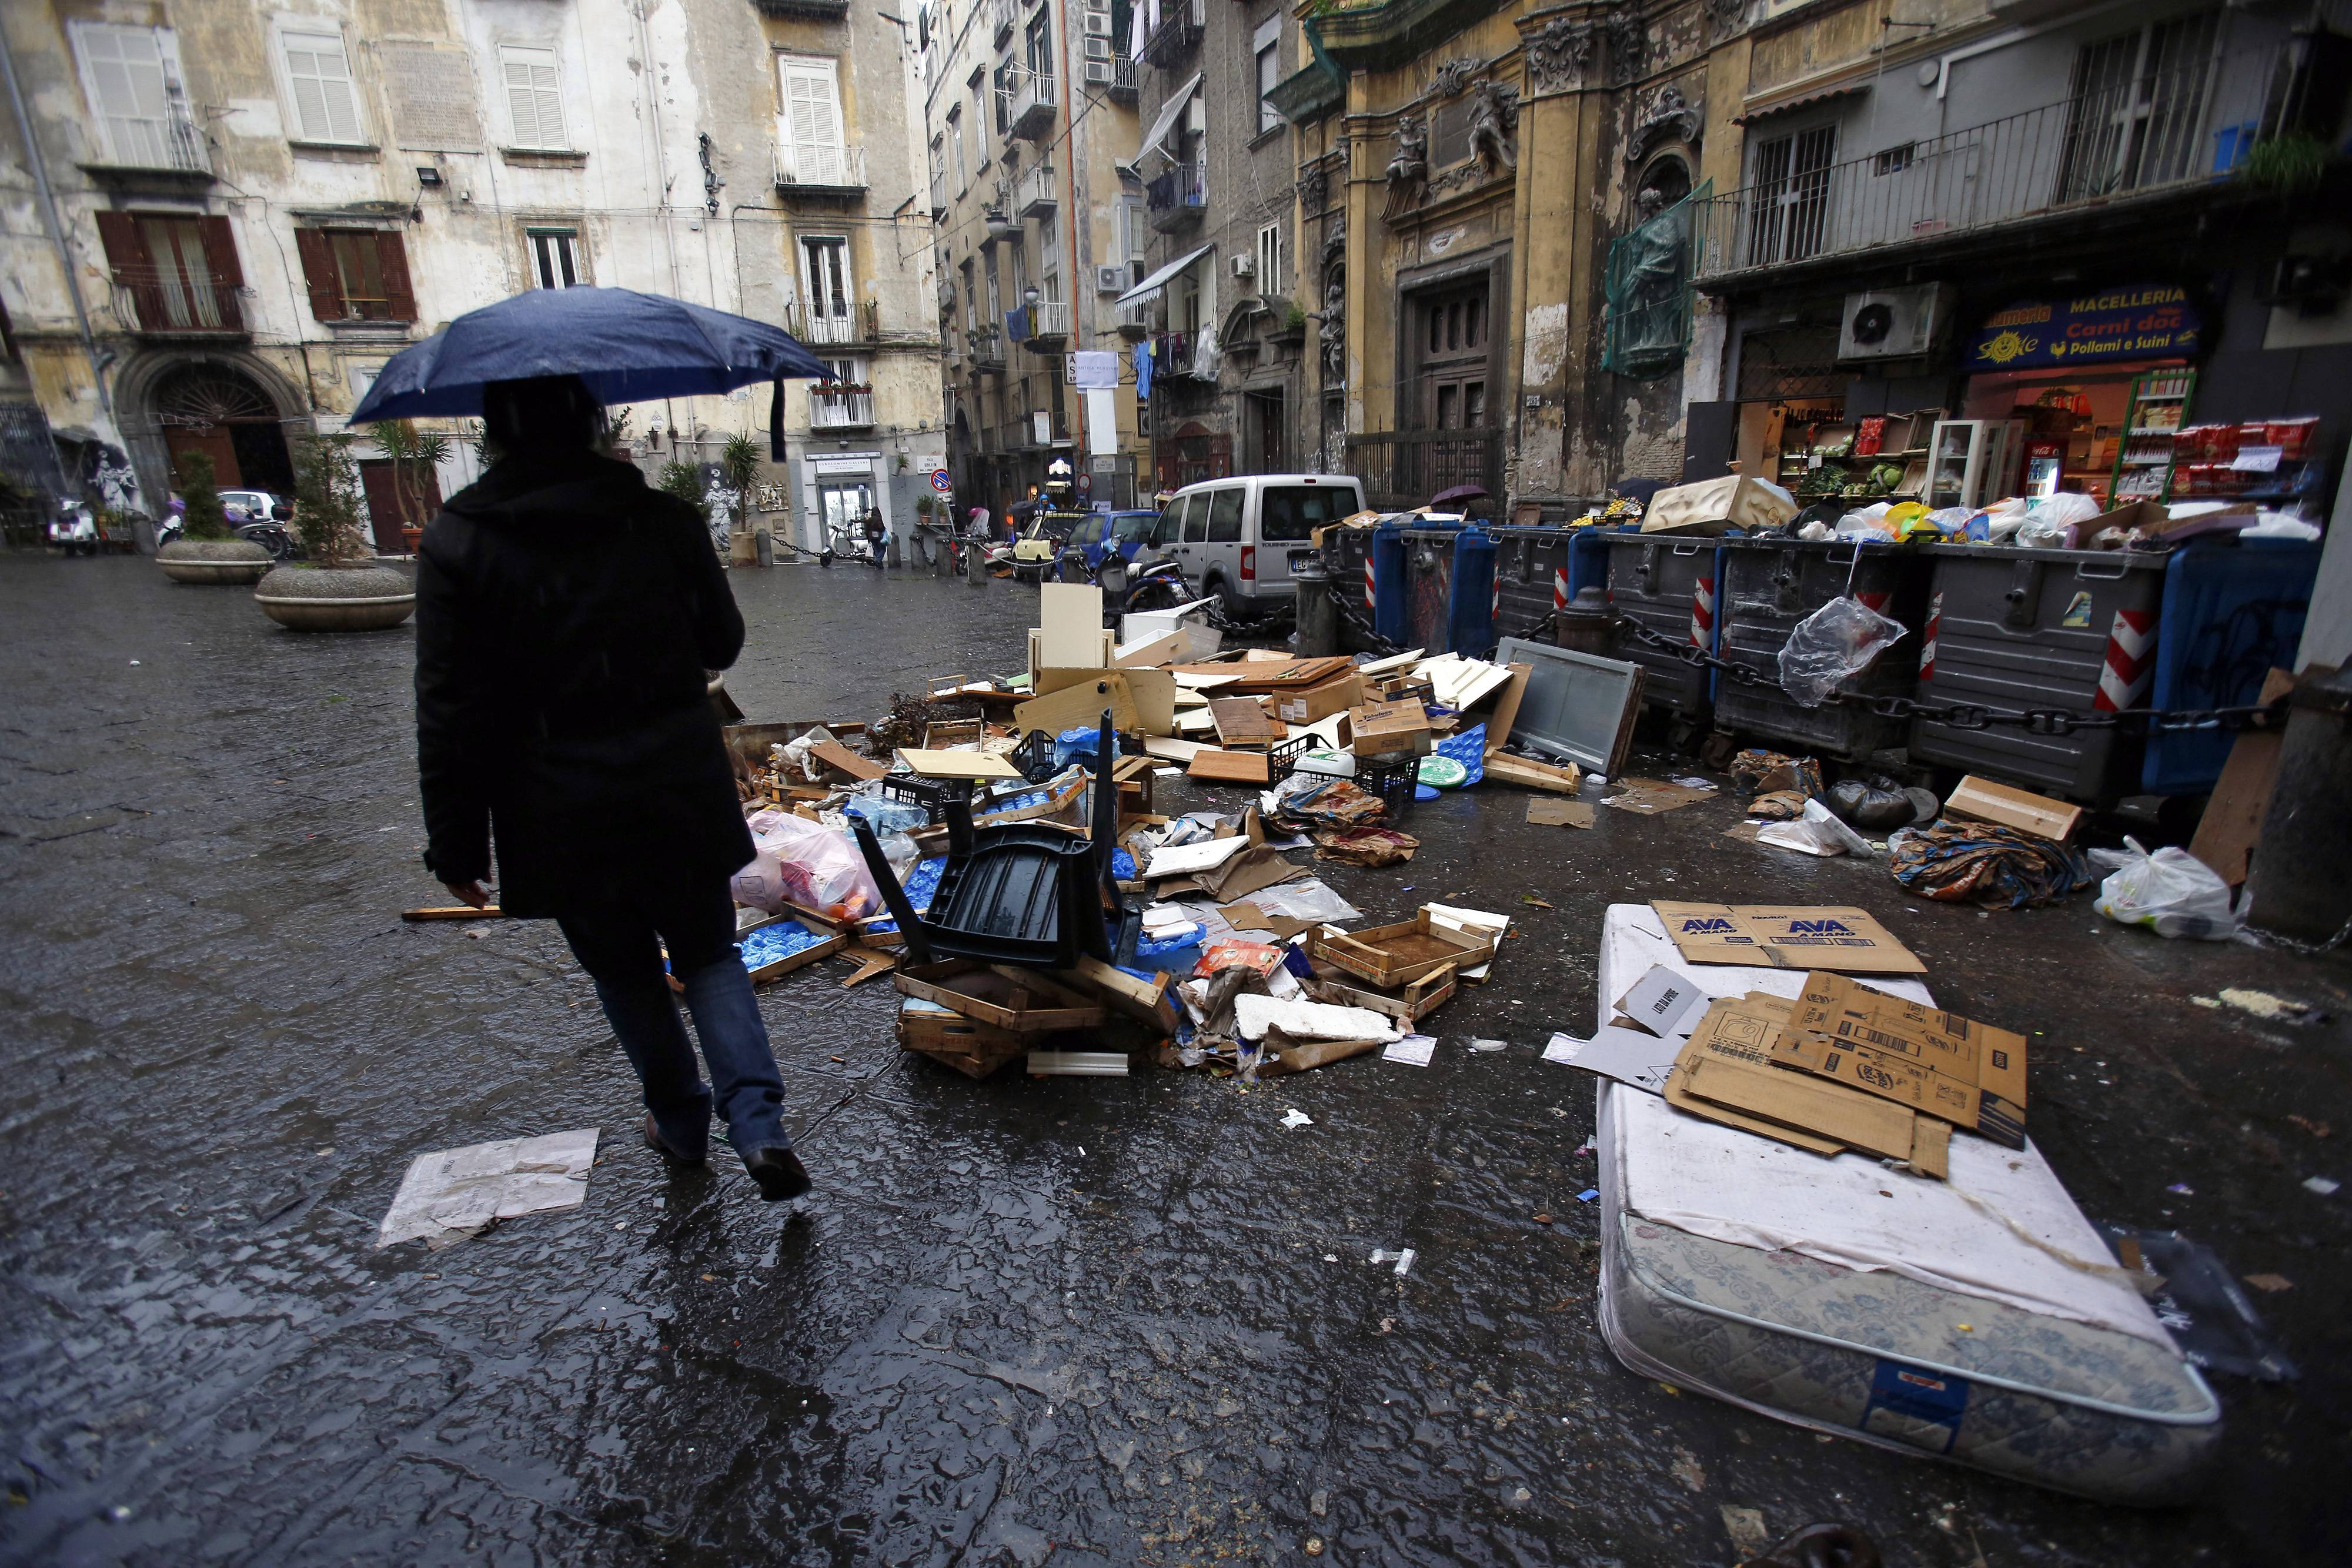 A pedestrian passes a pile of garbage strewed around trash cans outside a store in Naples, Italy, on Saturday, Feb. 1, 2014. In Naples, the local youth unemployment rate in 2012 was 53.6 percent compared to a national average of 35.3 percent. Photographer: Alessia Pierdomenico/BloombergBloomberg News